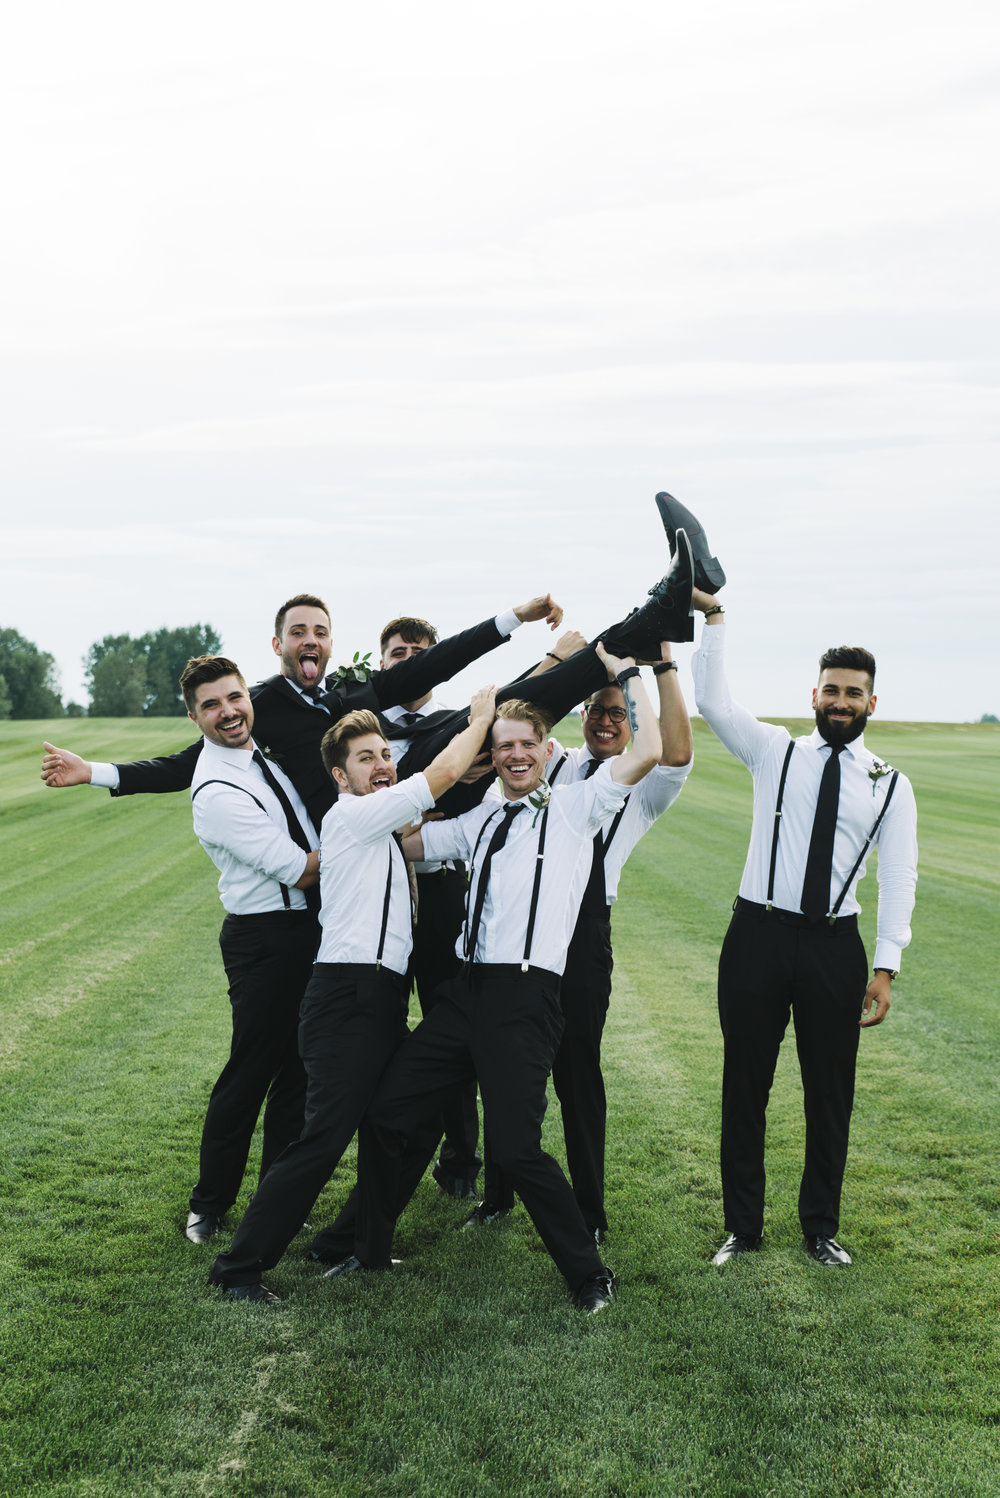 RosewoodWeddingPhotos-LondonWedding-KylieAlex-1435-SelfishThings-BohoFarmWedding-Groomsmen